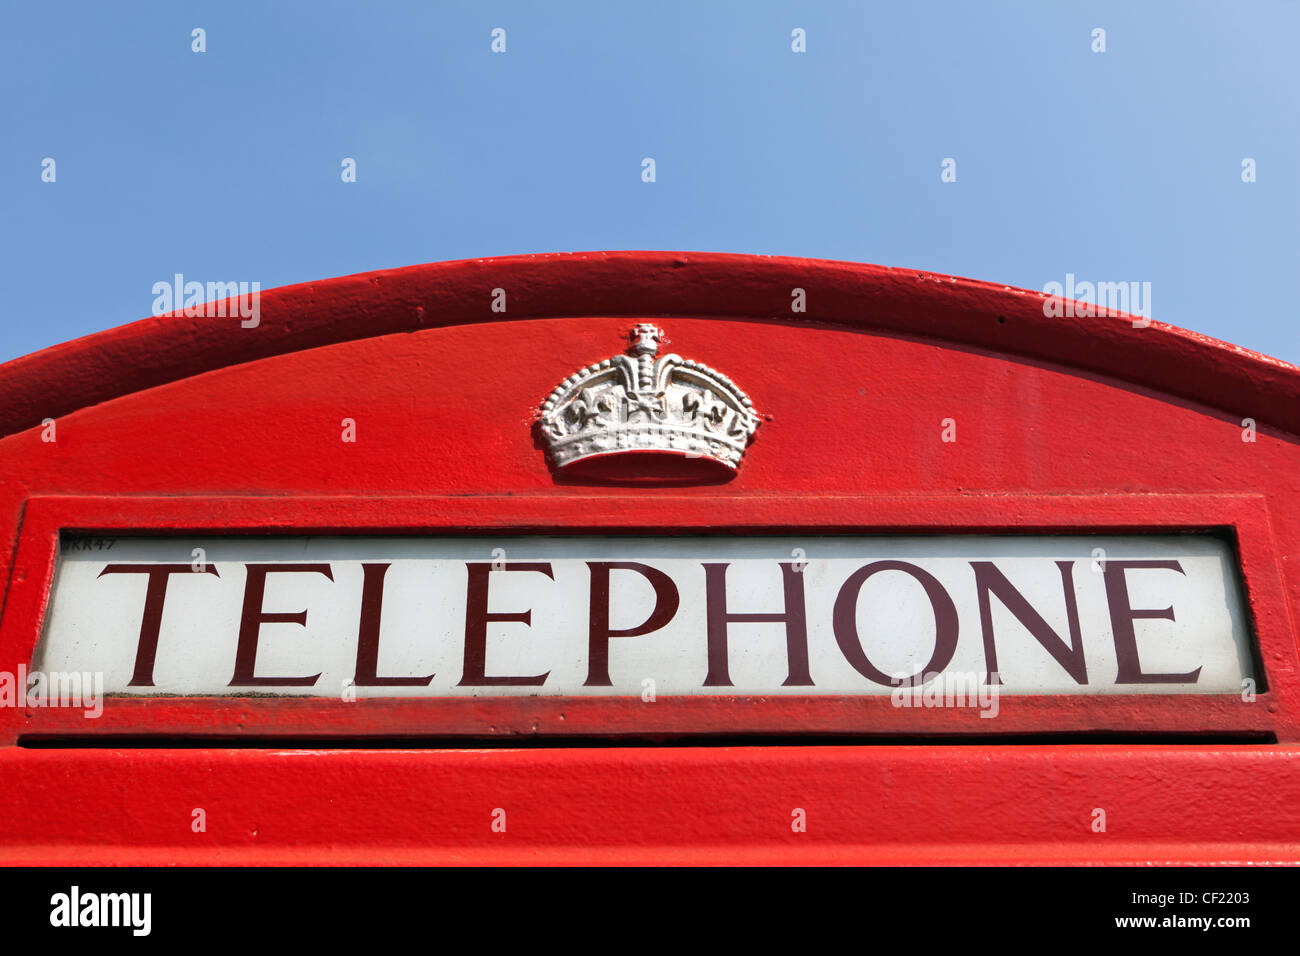 The top of a red telephone box featuring a crown and the word 'TELEPHONE'. - Stock Image